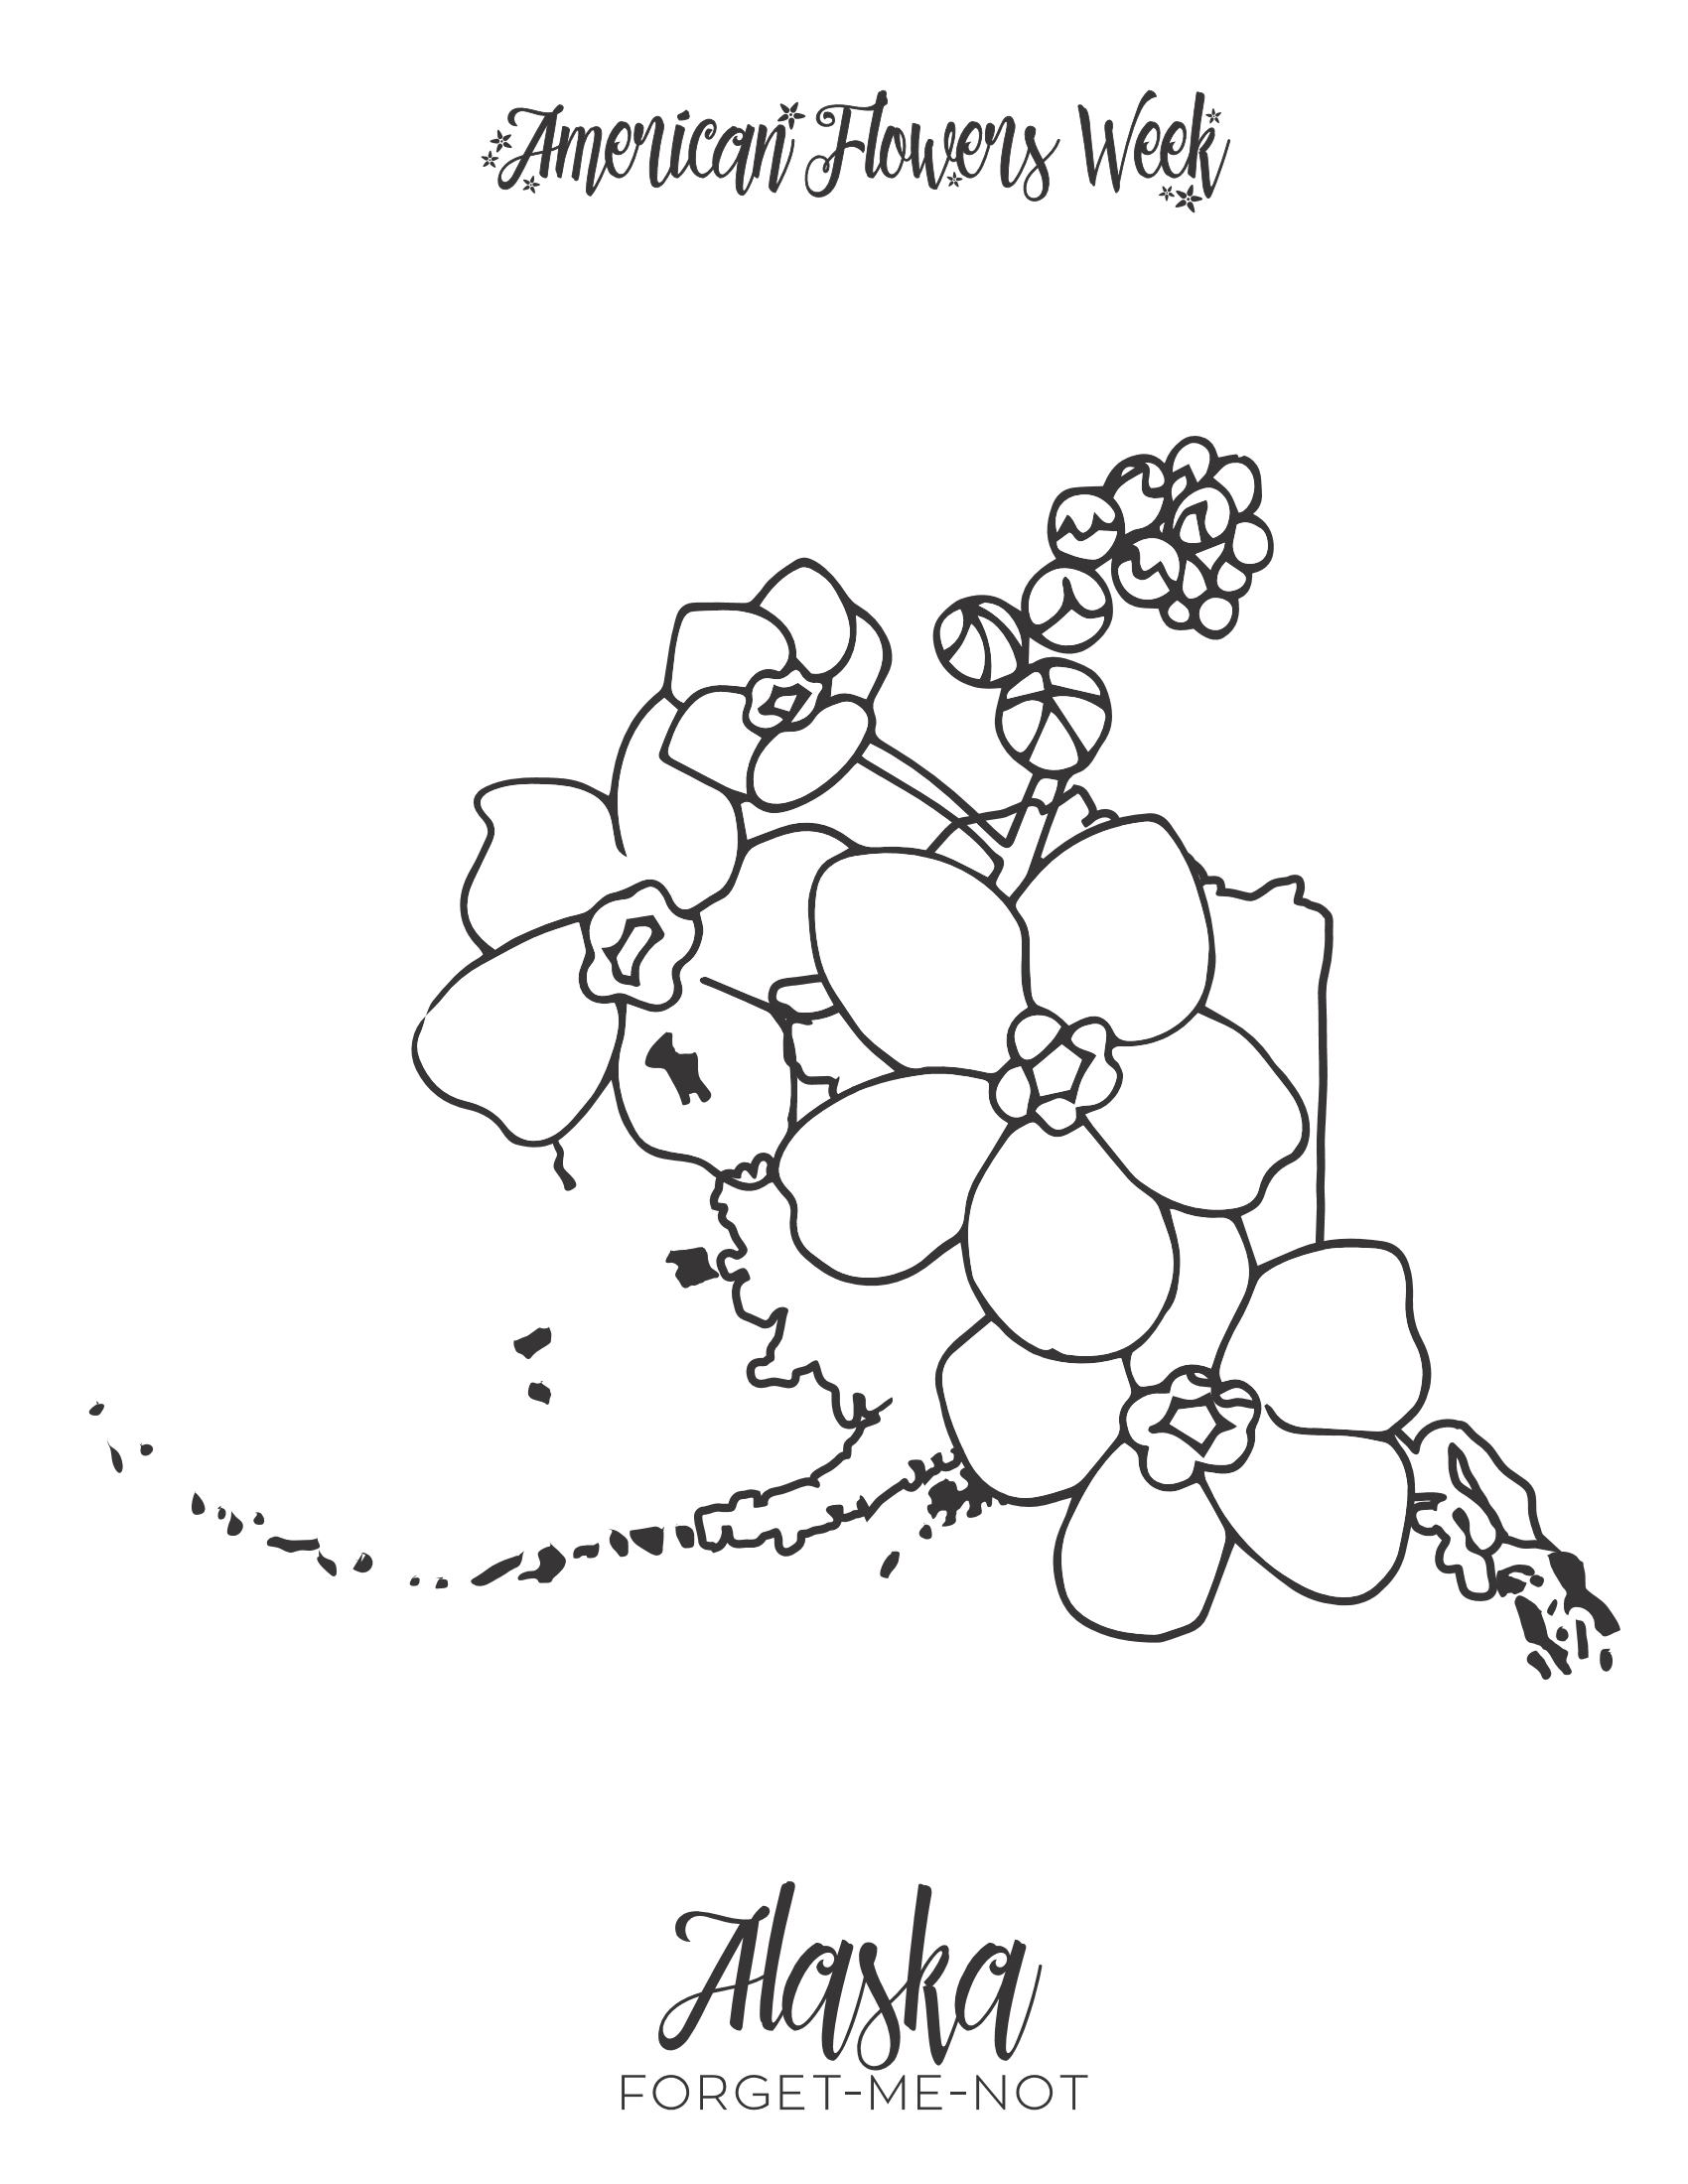 michigan state flower 50 state flowers coloring pages for kids state flower michigan 1 1